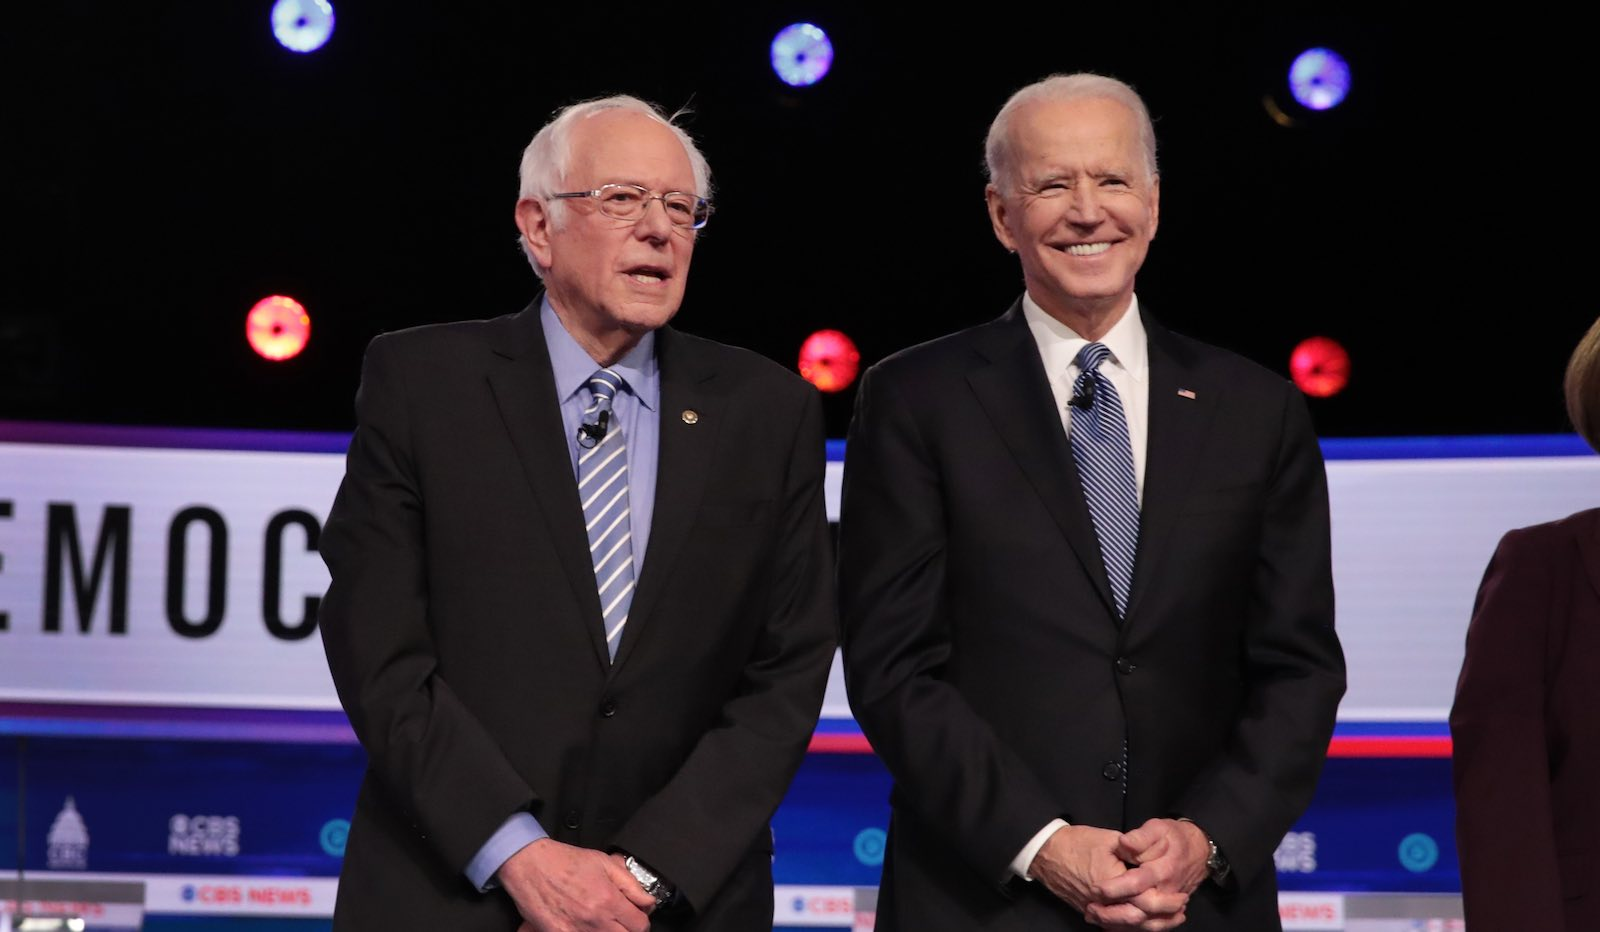 Democratic presidential candidates Bernie Sanders (l) and Joe Biden before a debate in Charleston, South Carolina, 25 February (Scott Olson/Getty Images)